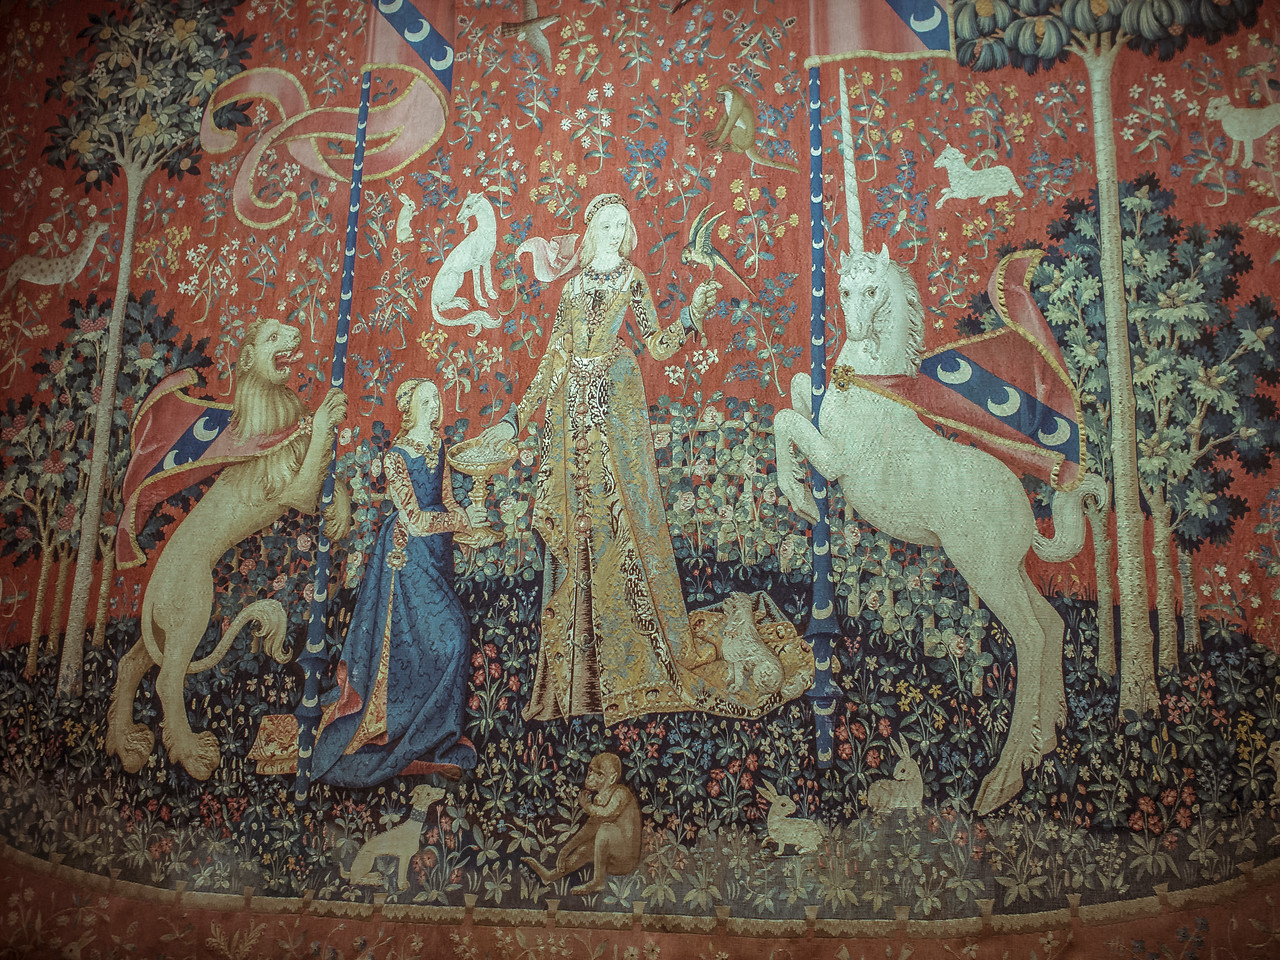 Cluny tapestries at Musee de Moyen Age Paris